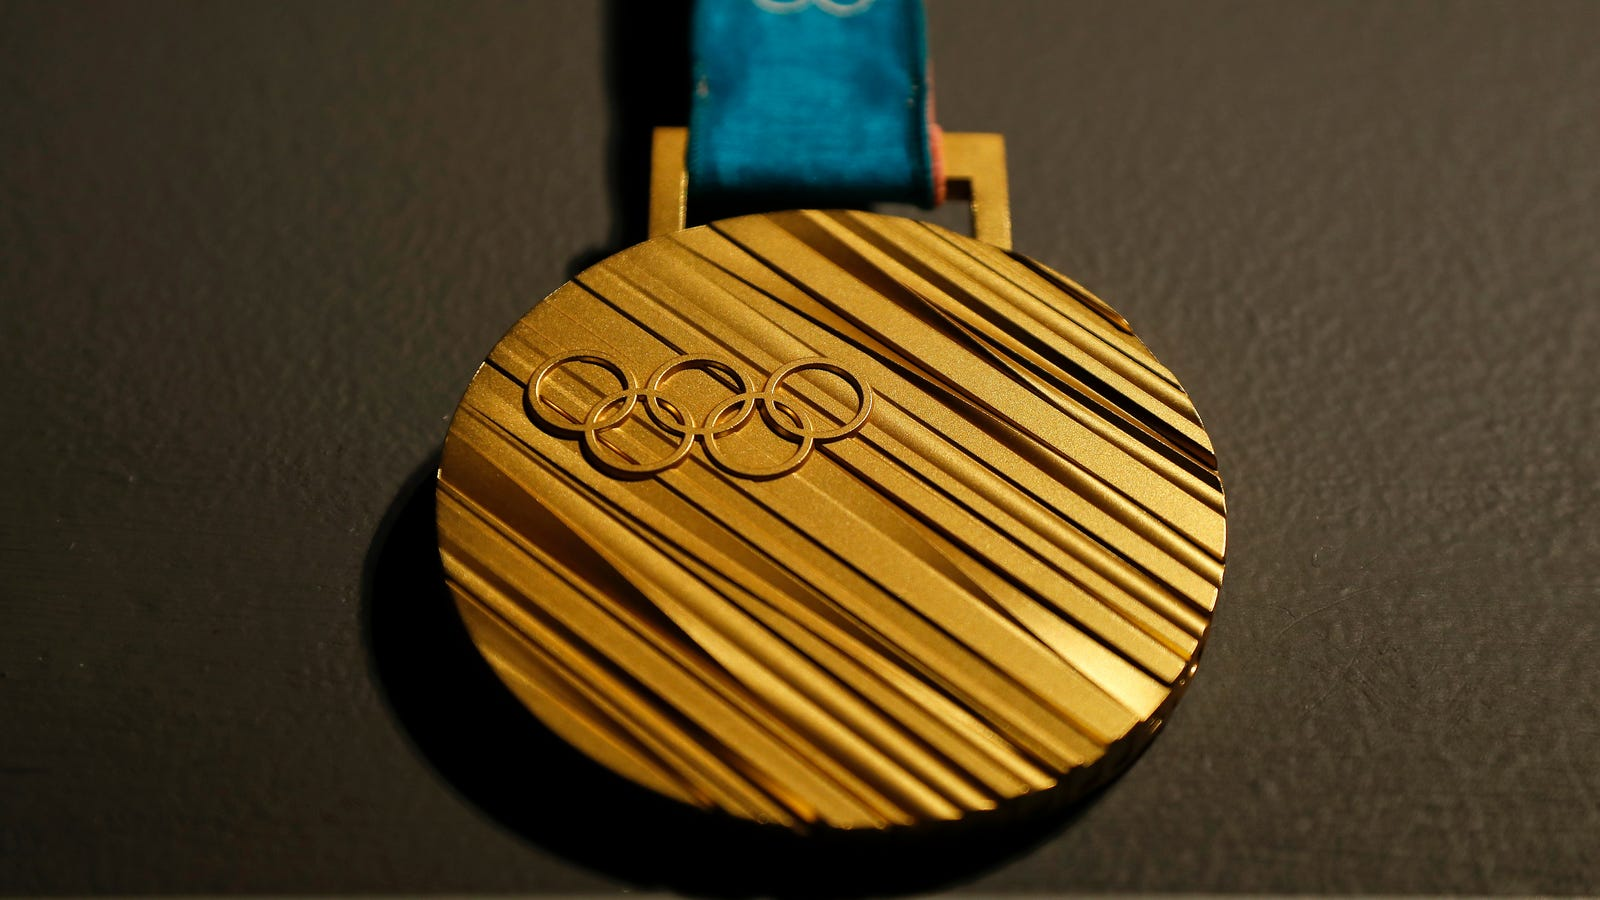 Olympia Medaille Wert